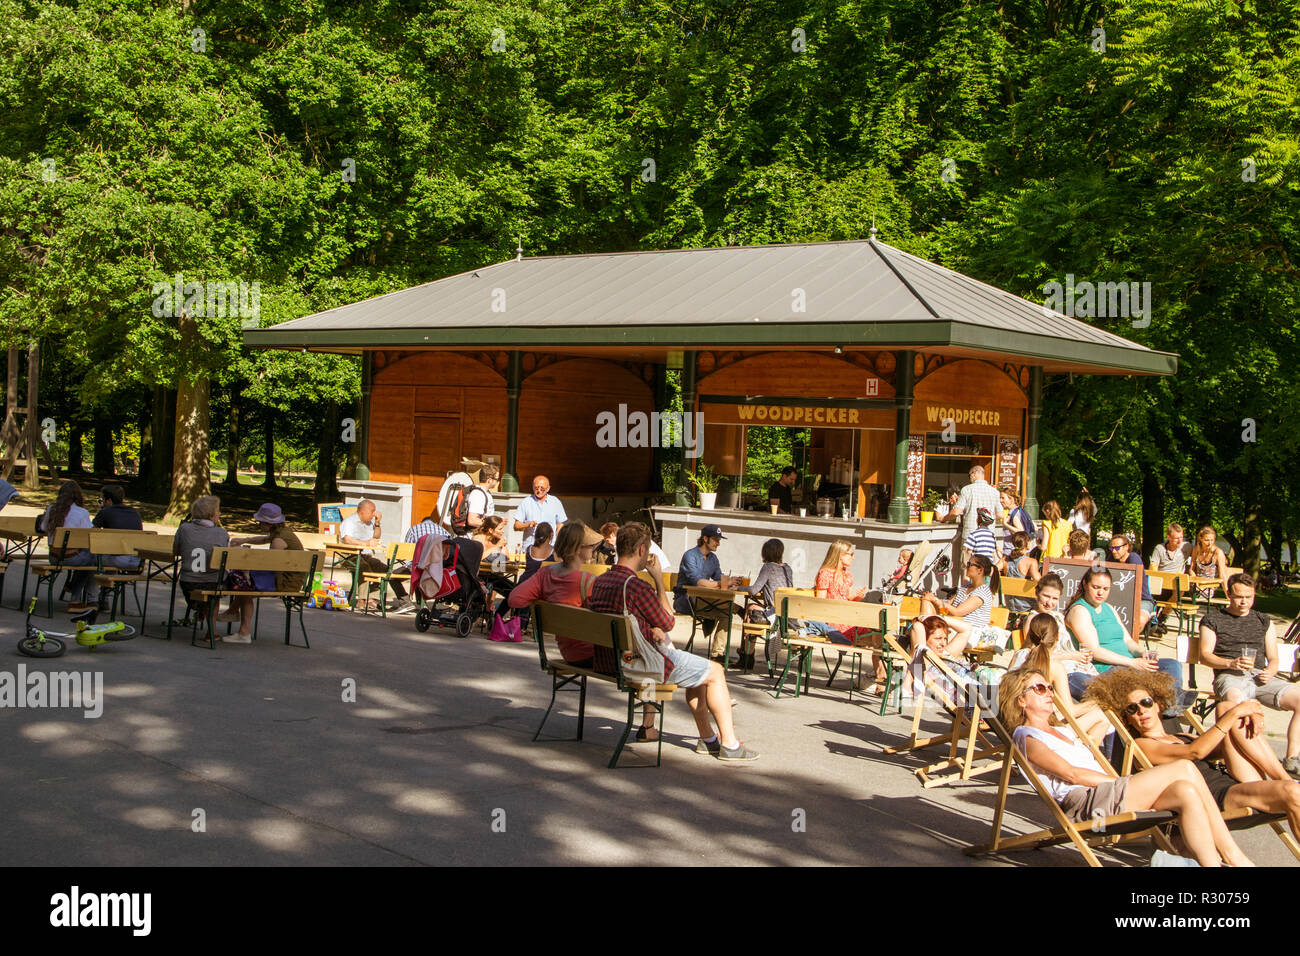 Locals having a cold drink and a rest in the city park Bois de la cambre during a hot summer day in Ixelles, Brussels, belgium - Stock Image